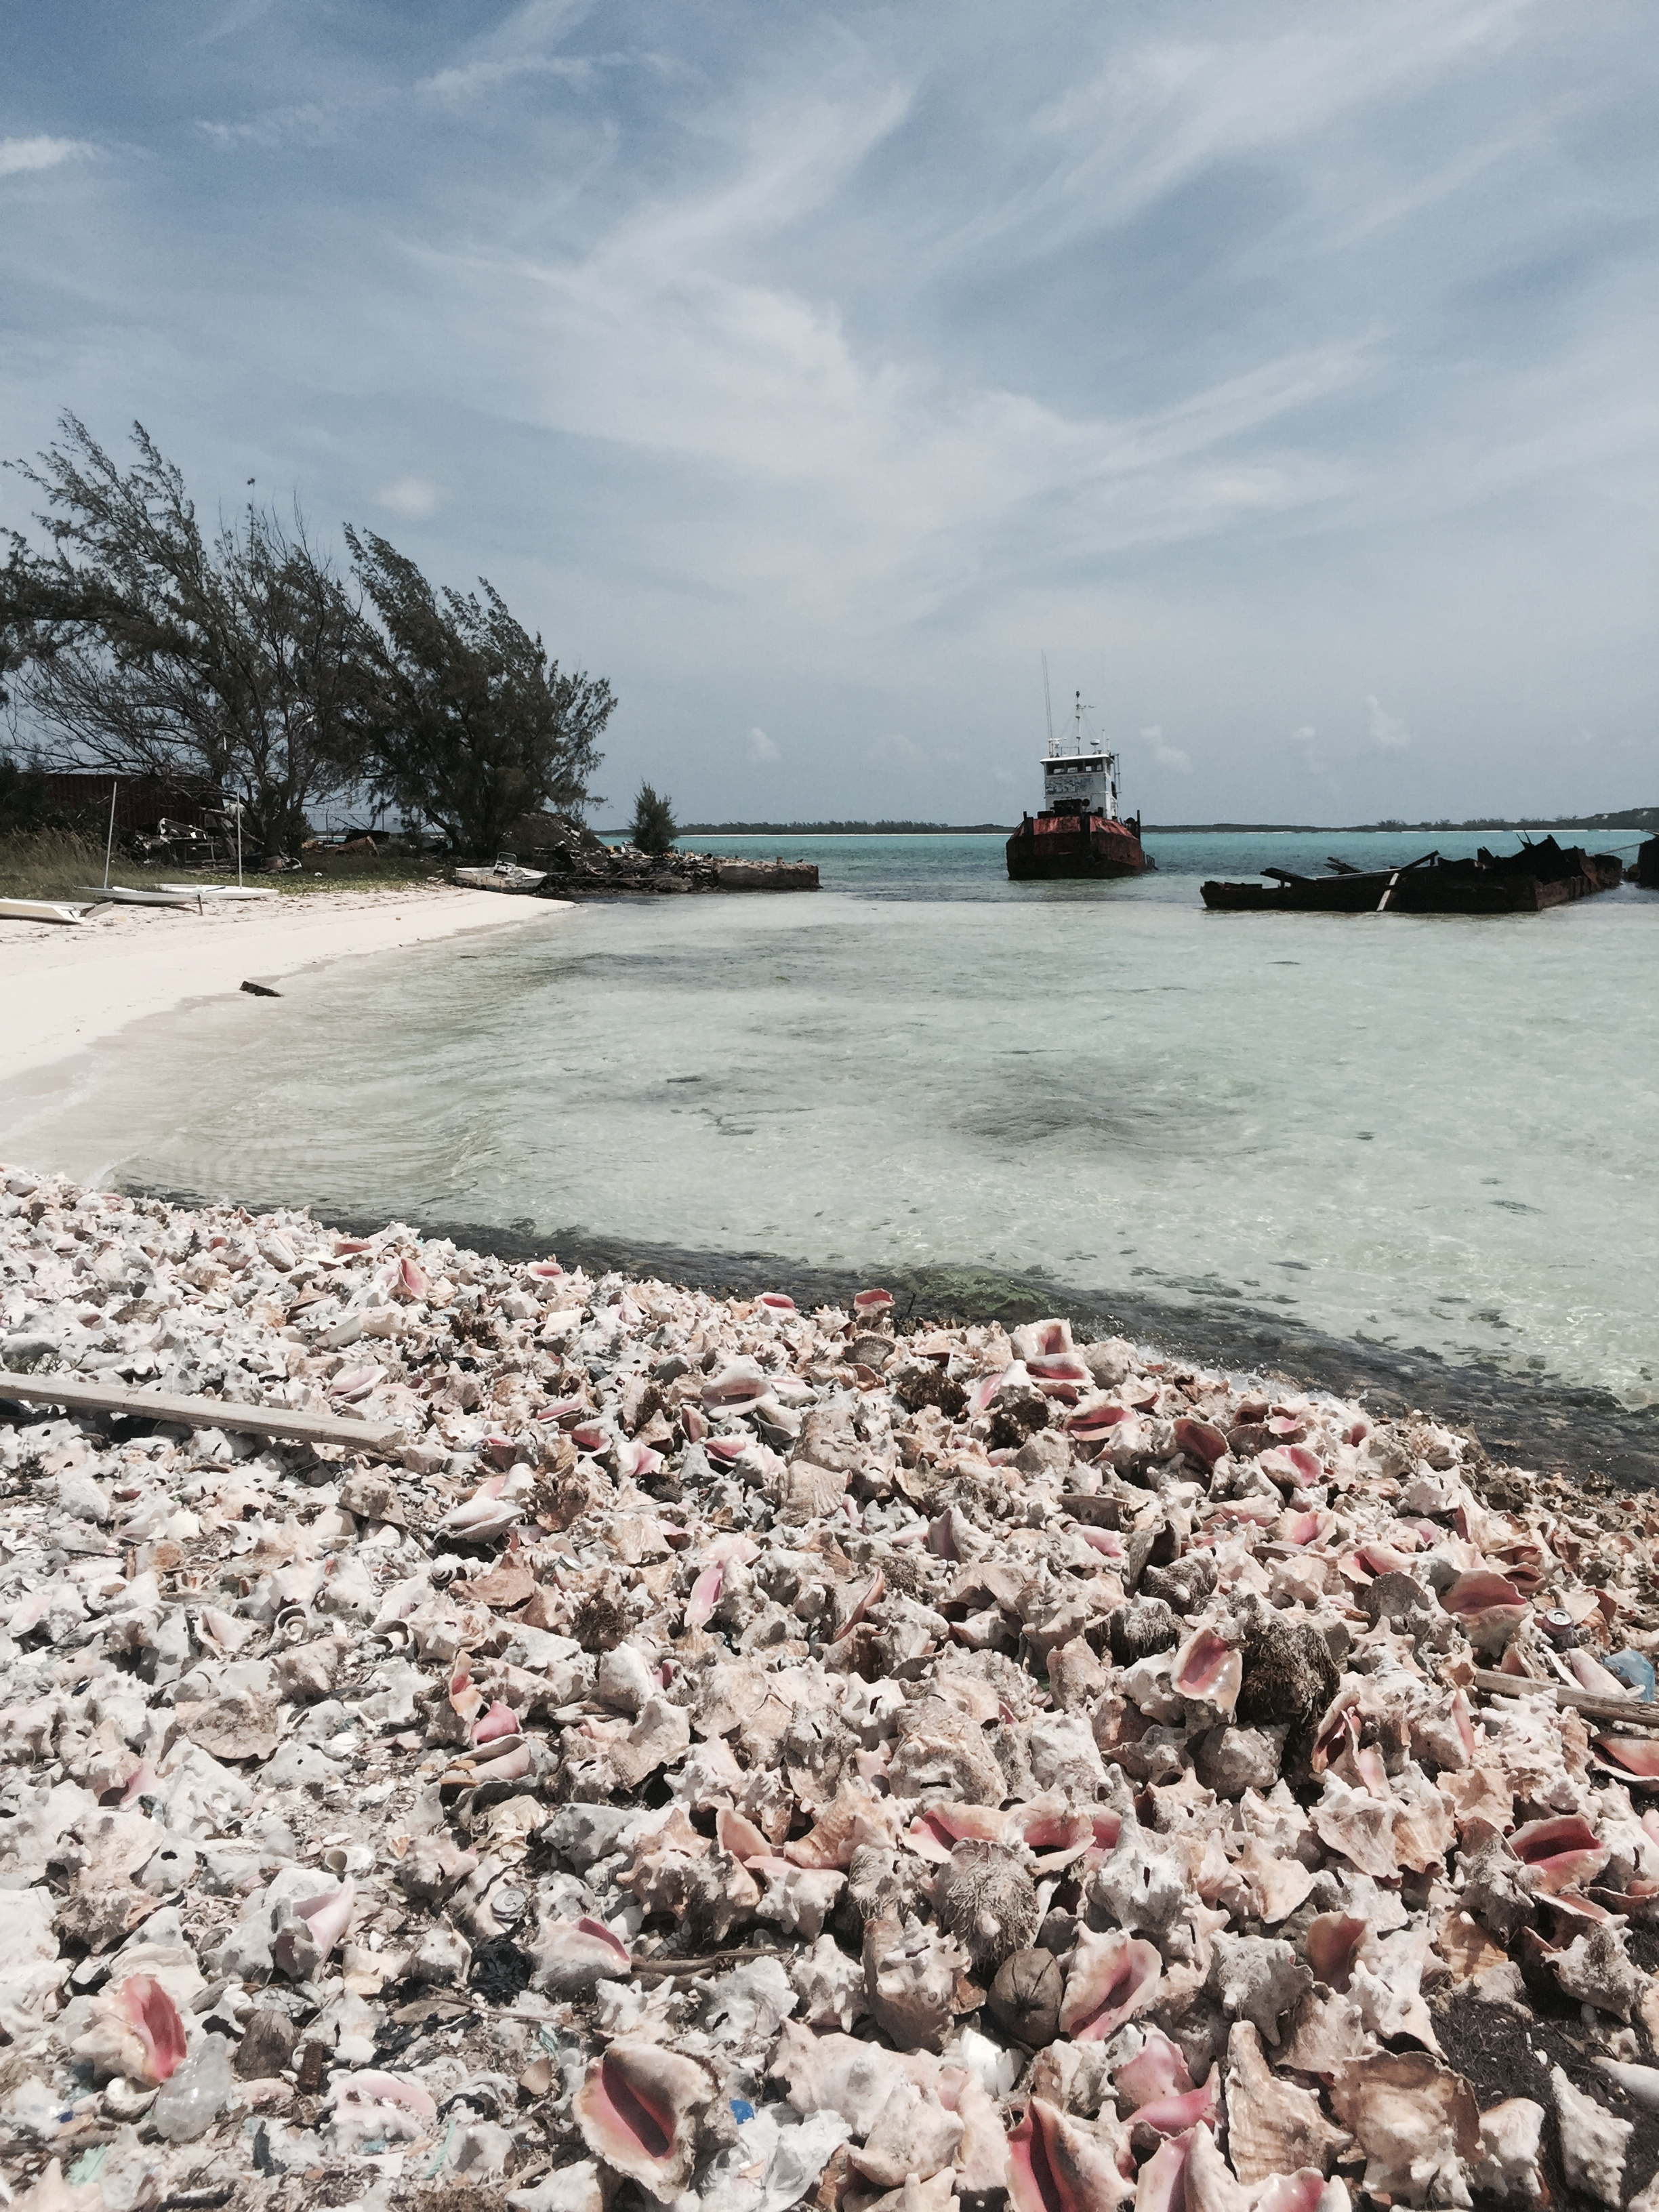 CONCH SHELL BEACH - Right off the Fish Fry town, there is a hidden conch shell beach, the conchs are from the Salad bar thrown into the sea, ultimately leaving behind a gorgeous tide of pink shells for you to go see or take home!Theres also a shipwreck right behind the beach for you to explore.